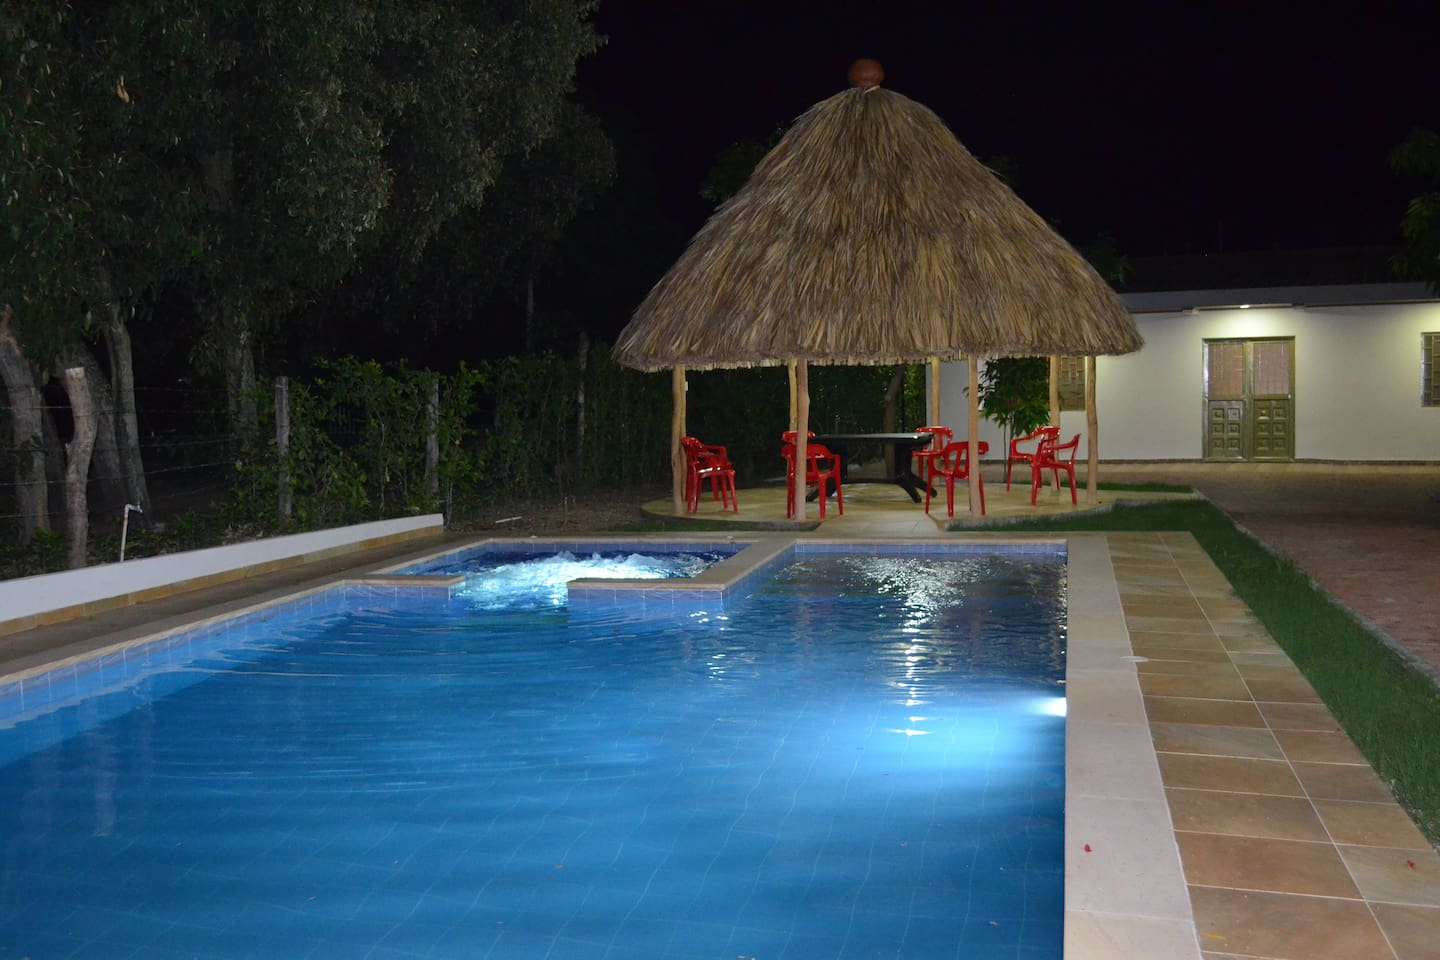 Piscina con jacuzzi, parasoles y asoleadoras, Kiosko con sillas y mesas a su comodidad/Pool with hot tub beach chairs and parasols, kiosk with tables and chairs at your disposition.